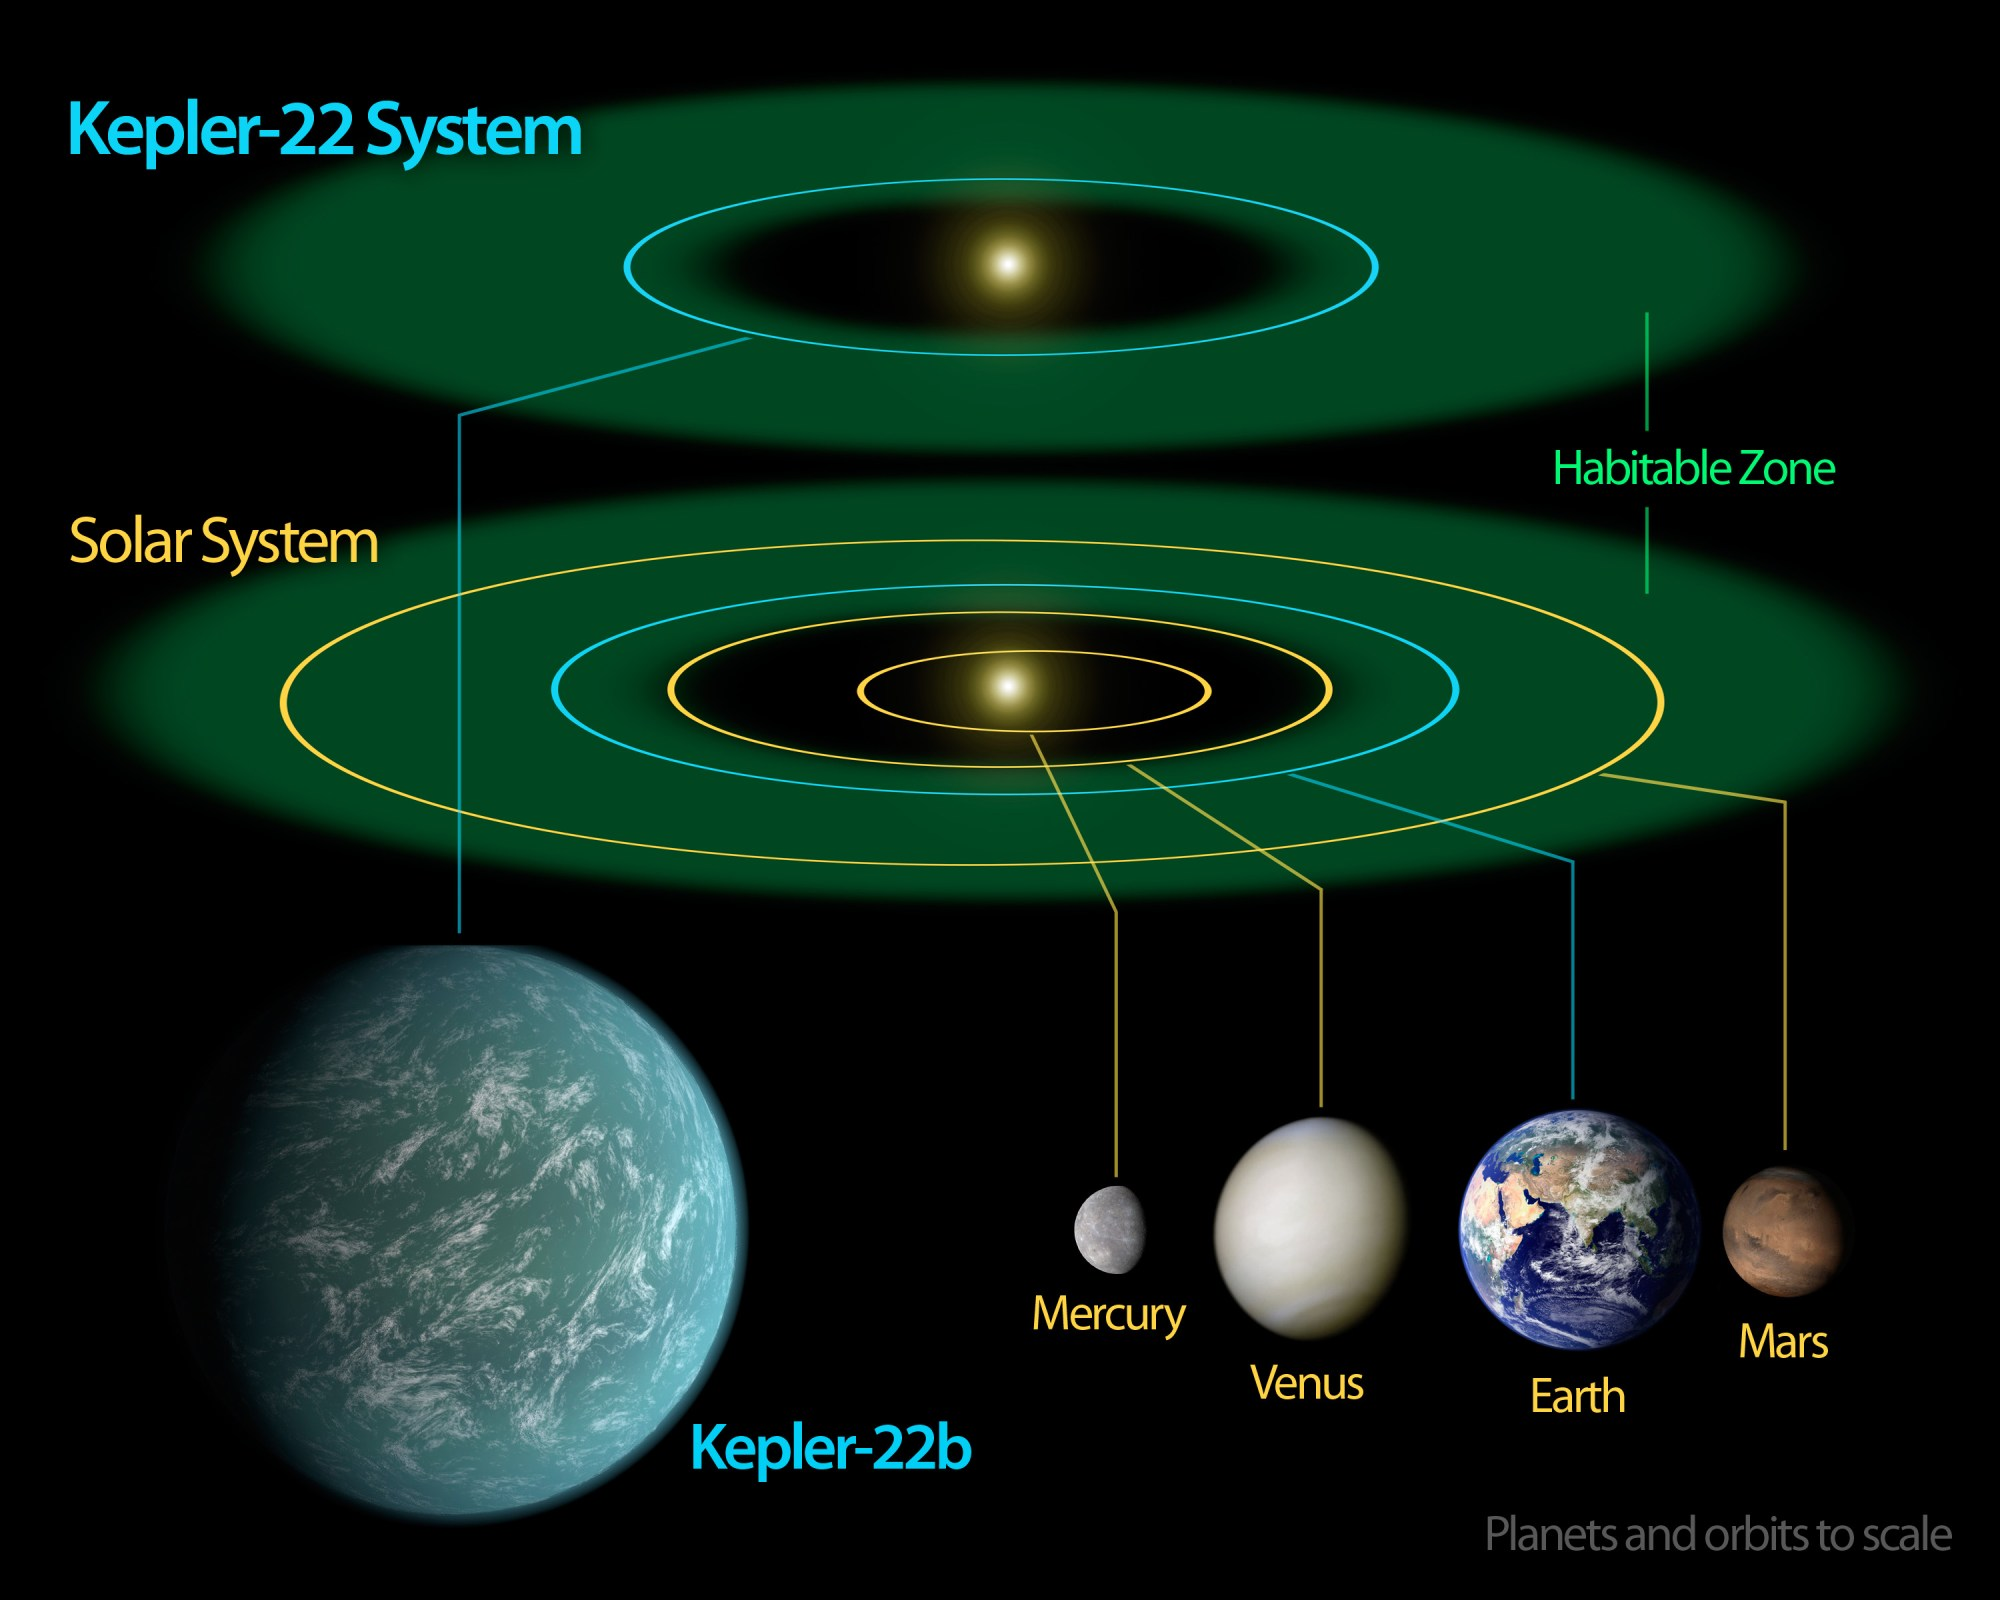 hight resolution of a diagram comparing size artist s impression and orbital position of planet kepler 22b within sun like star kepler 22 s habitable zone and that of earth